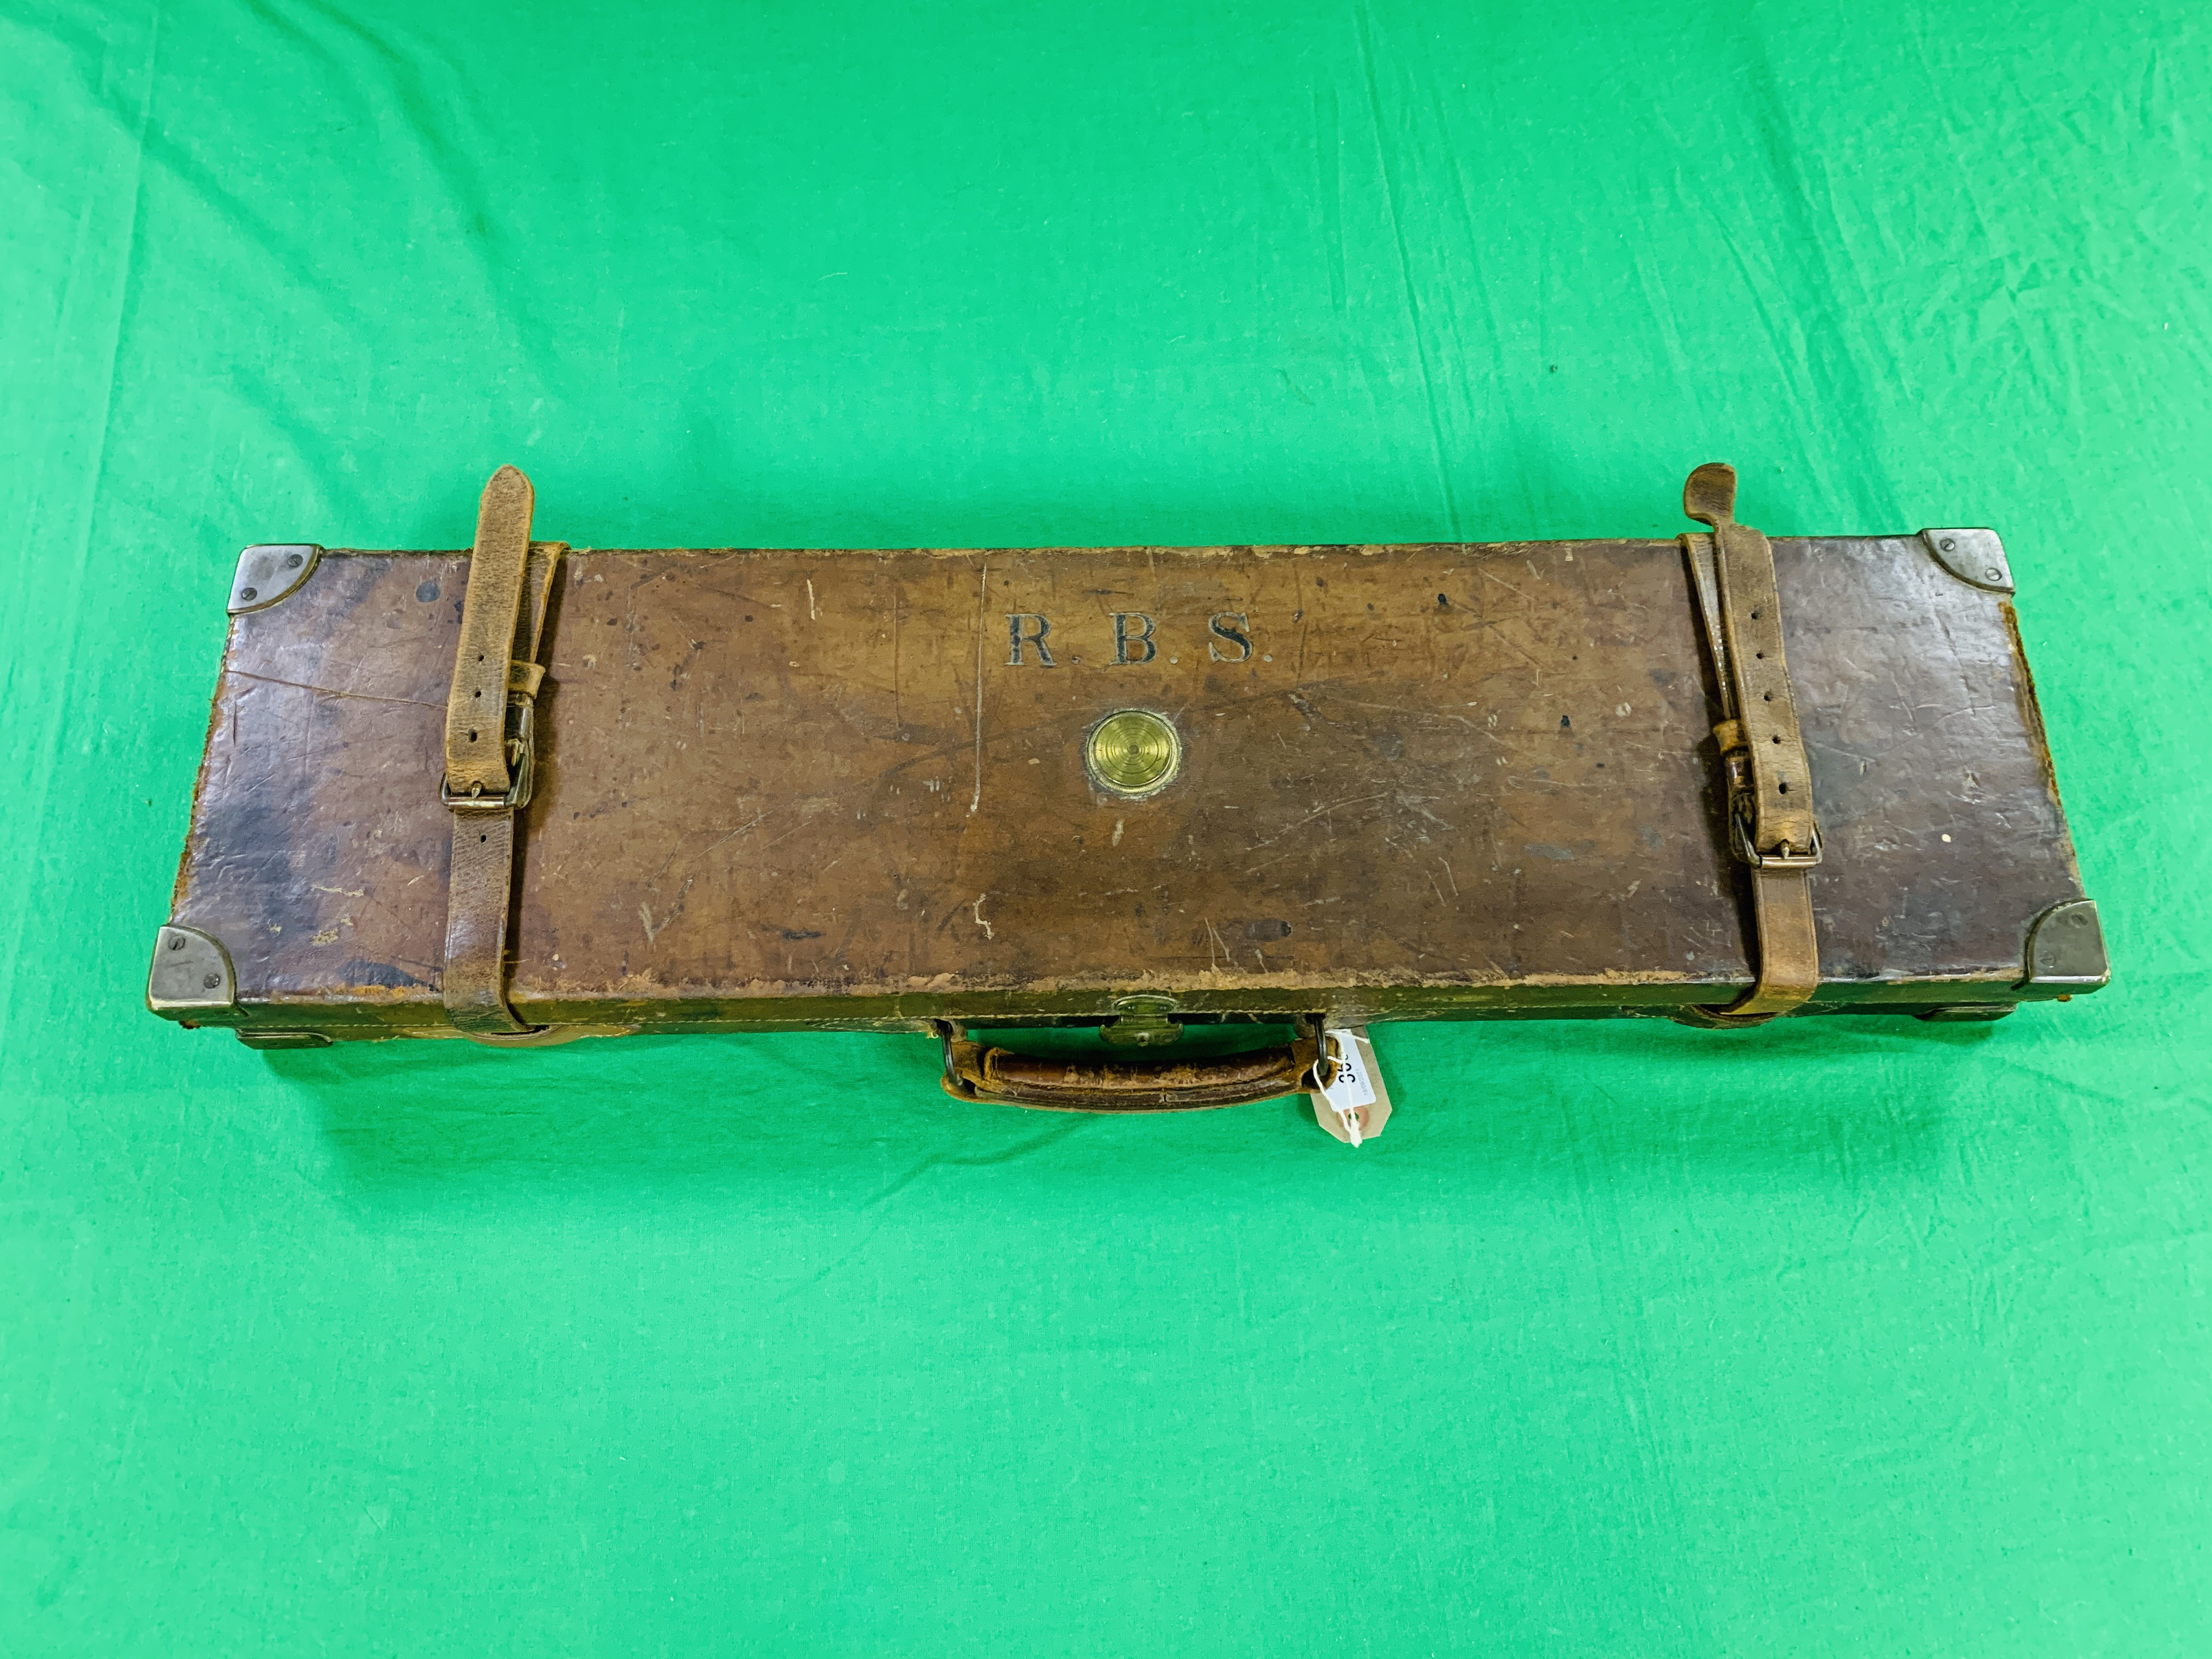 """OAK AND LEATHER 28 / 30"""" SIDE BY SIDE GUN CASE WITH B. HALLIDAY AND CO. LTD OF LONDON CASE LABEL. - Image 10 of 10"""